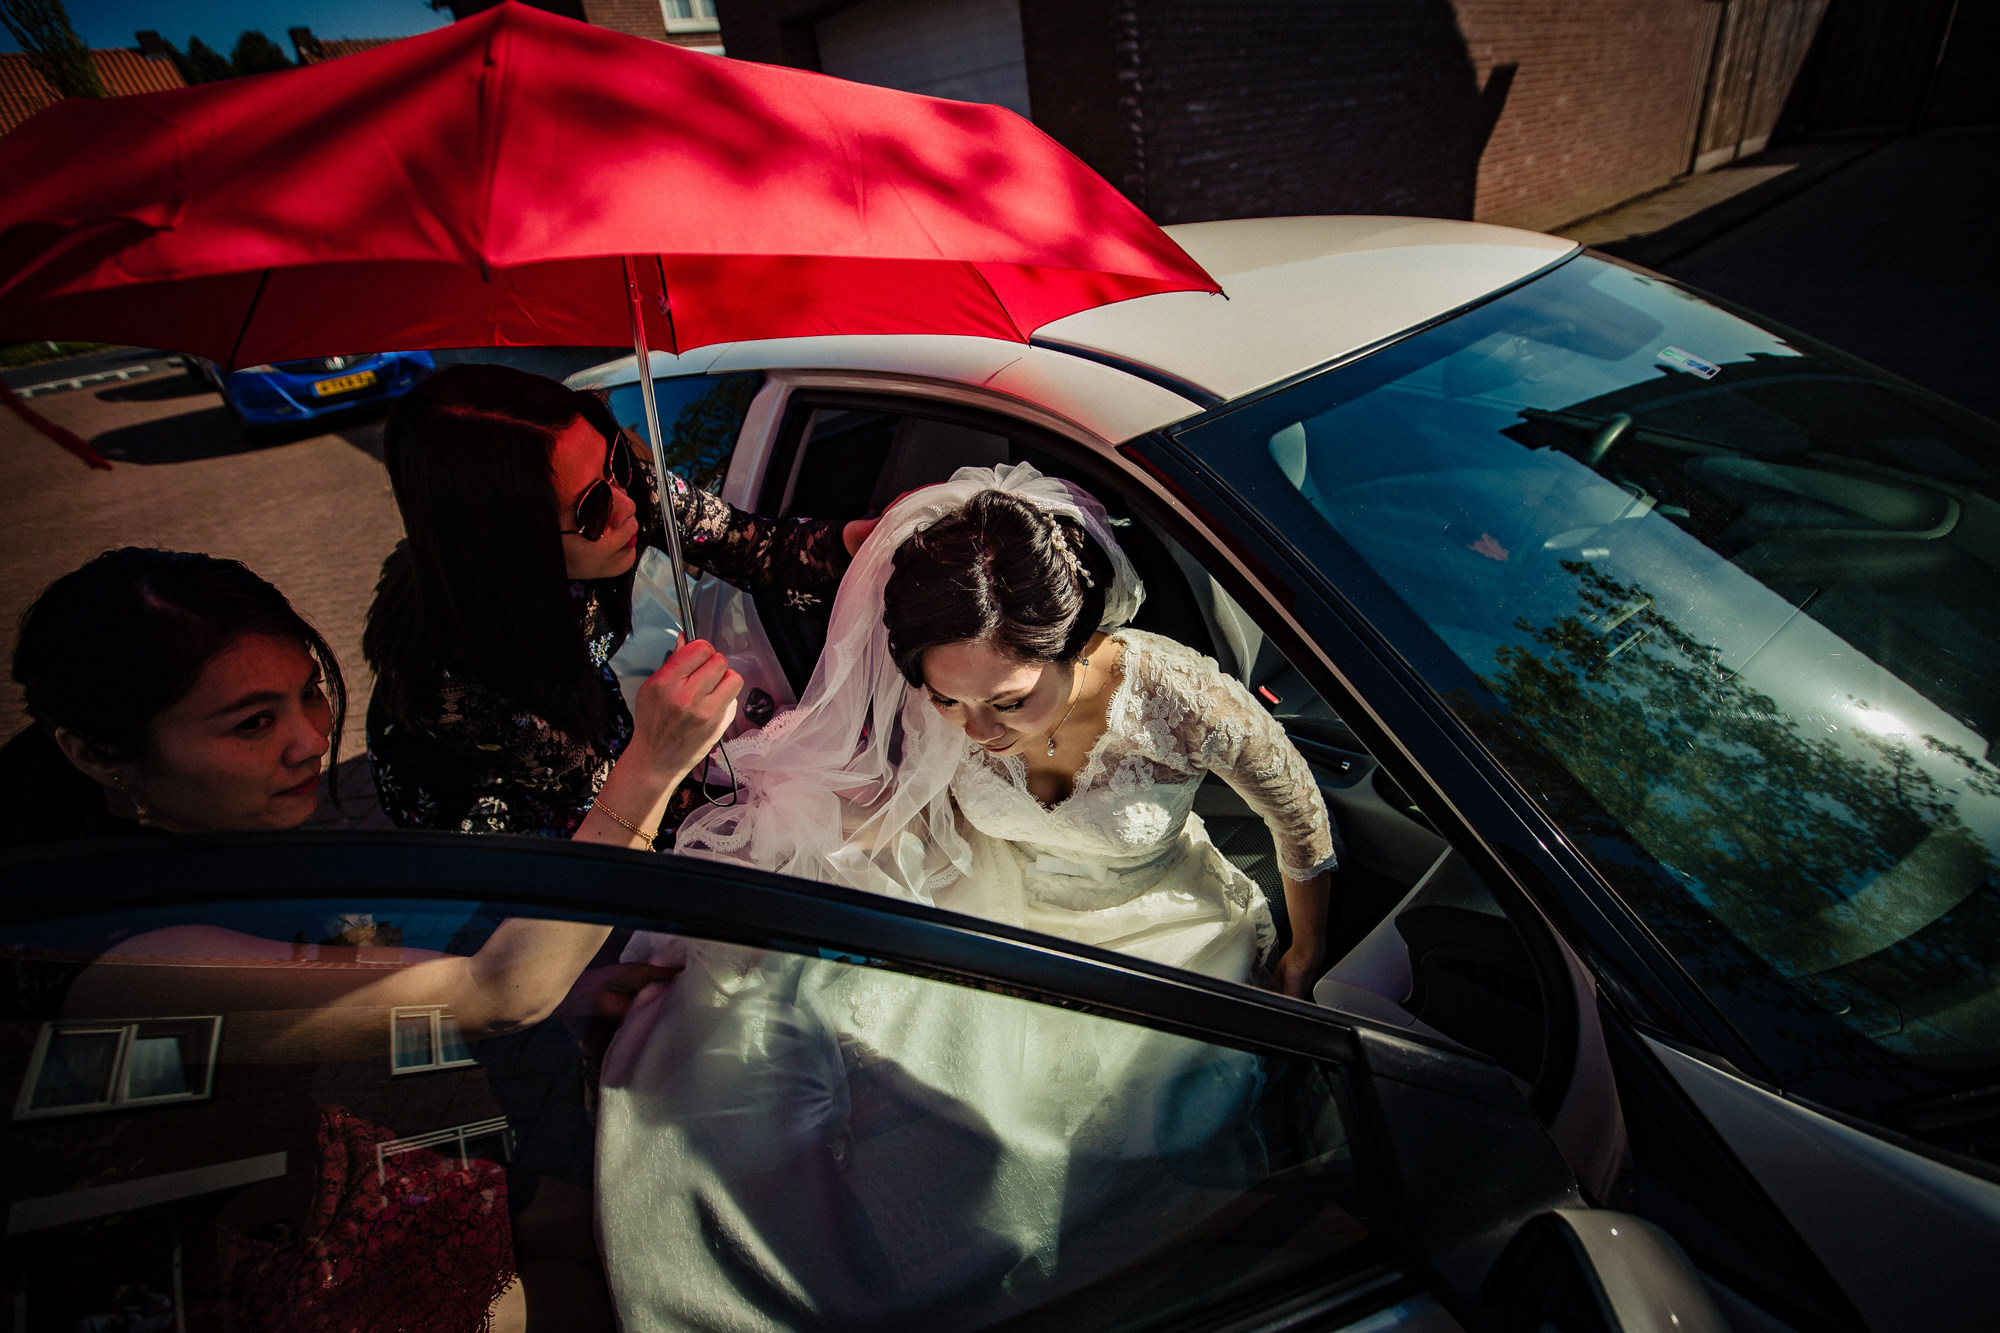 Bride arrives under red umbrella